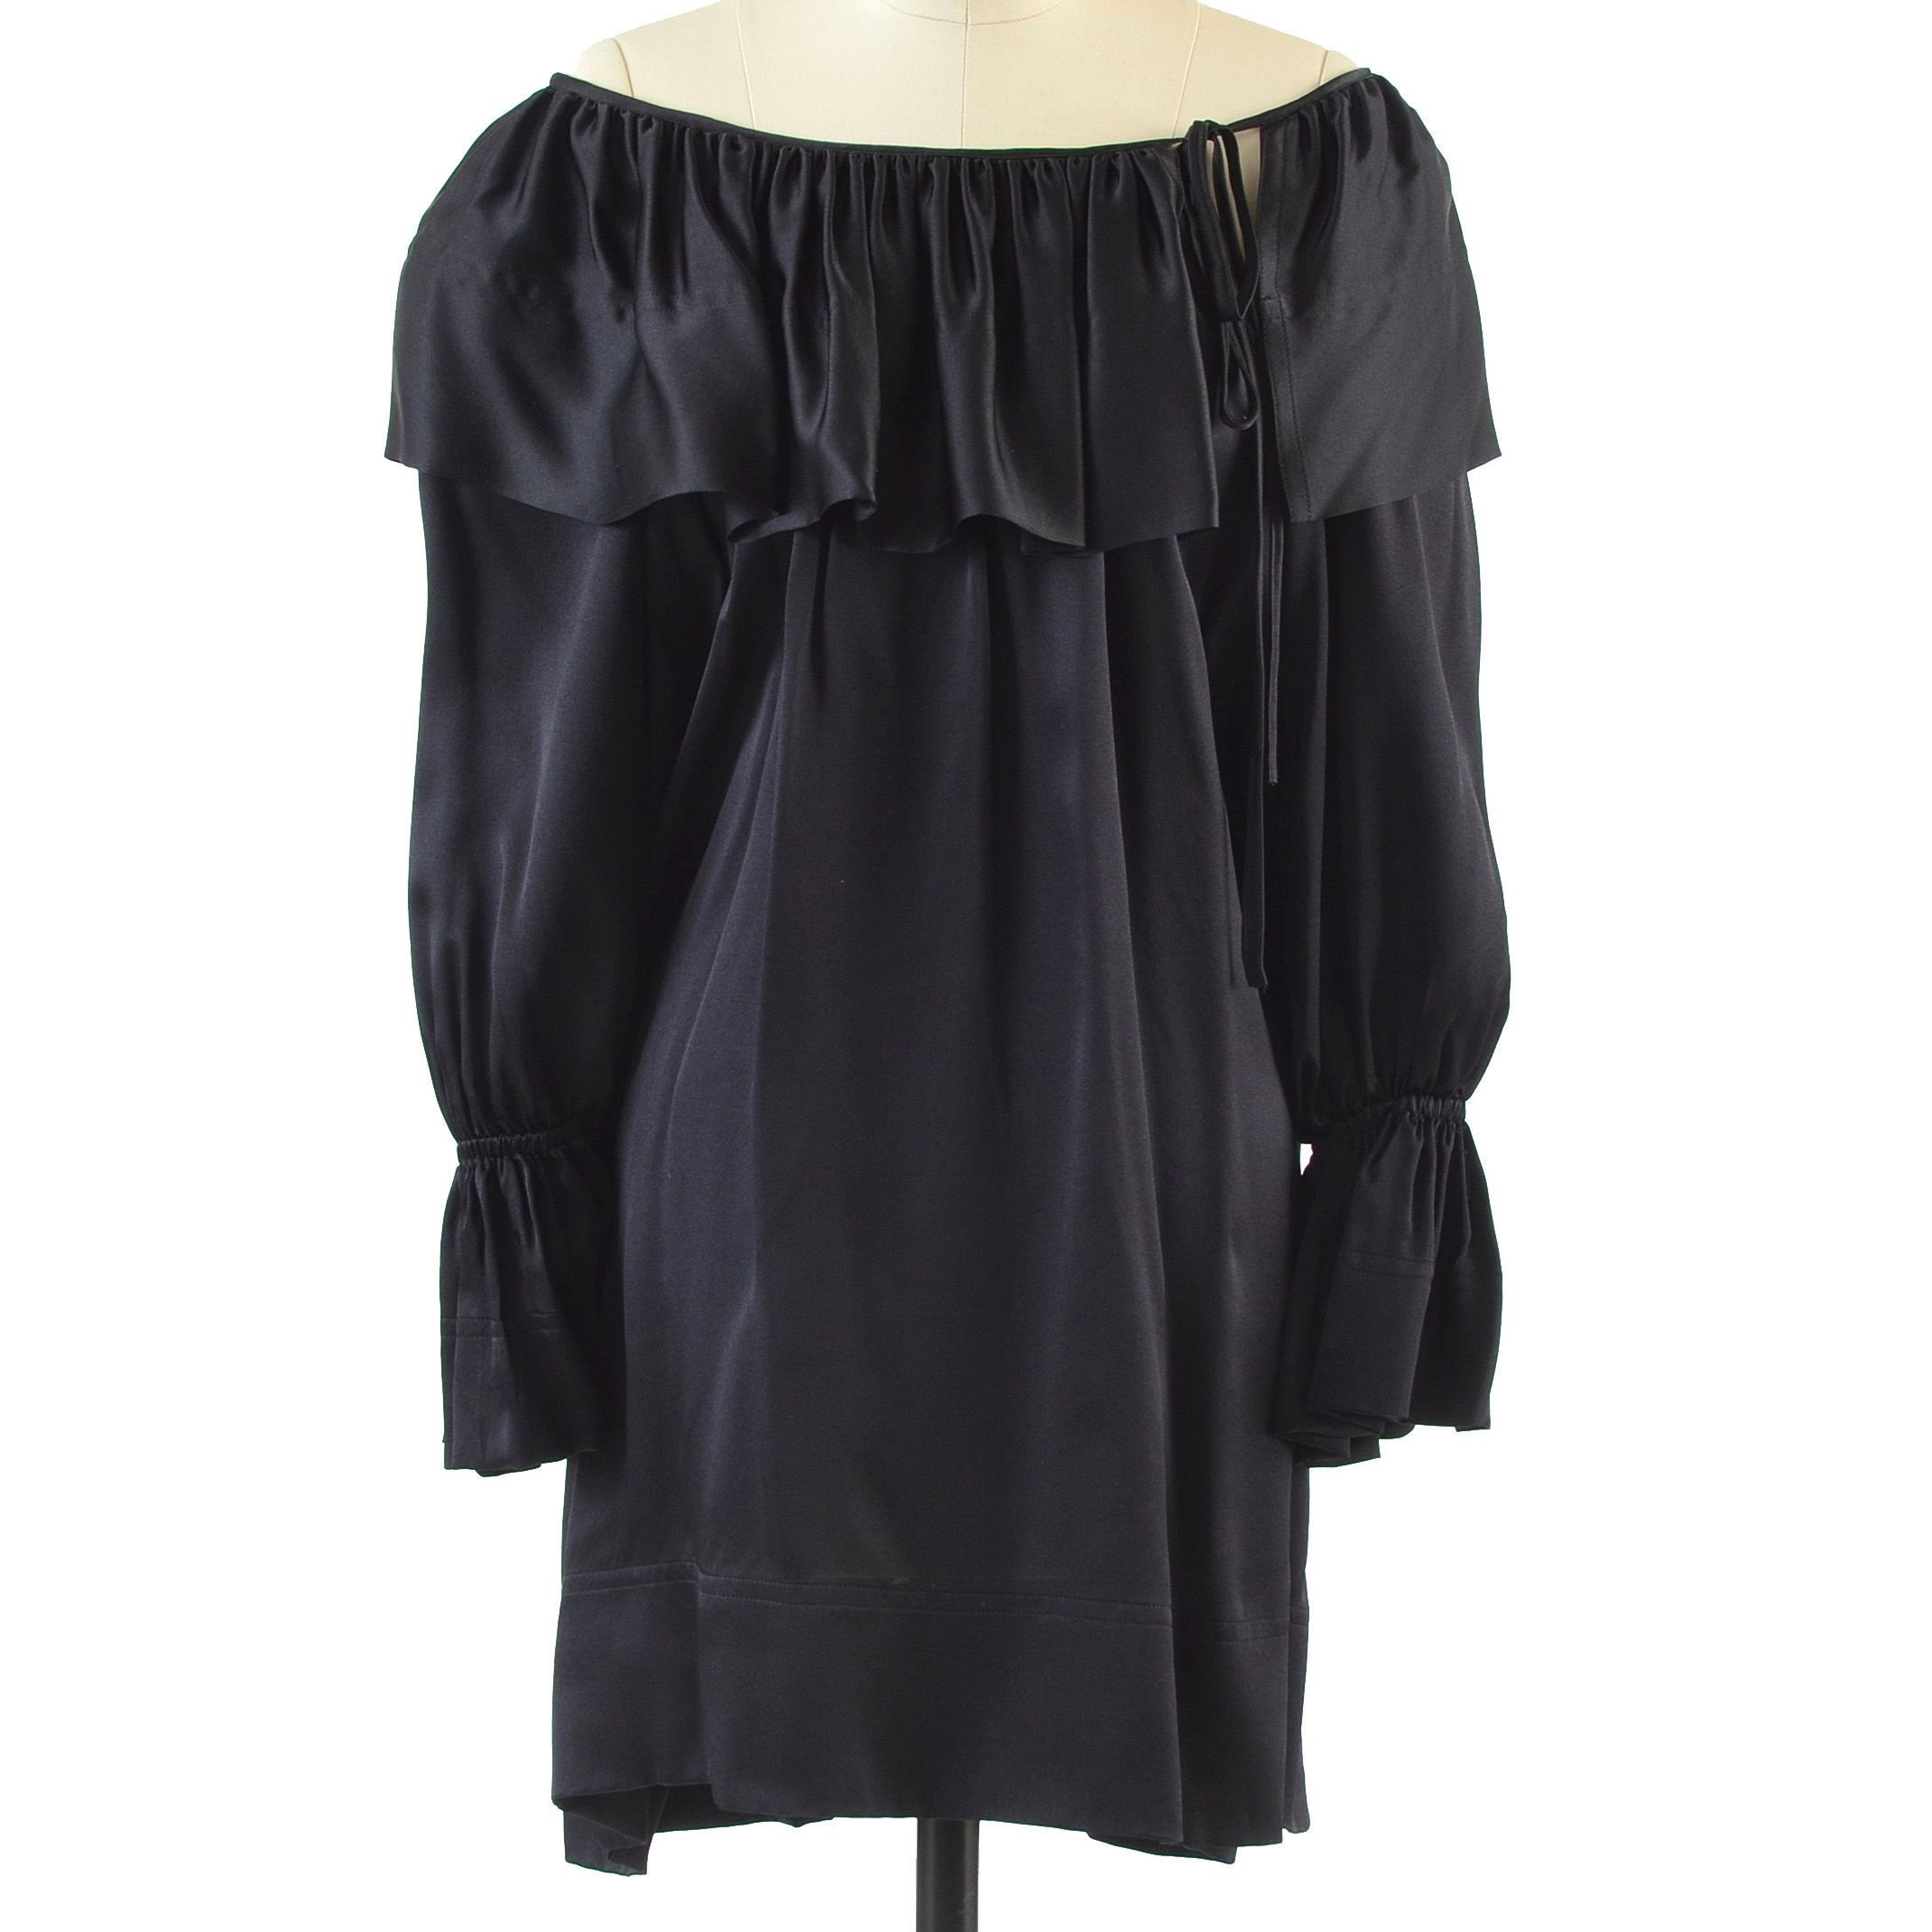 Angelo Tariazzi of Paris Black Silk Over-The-Knee Length Tunic Dress